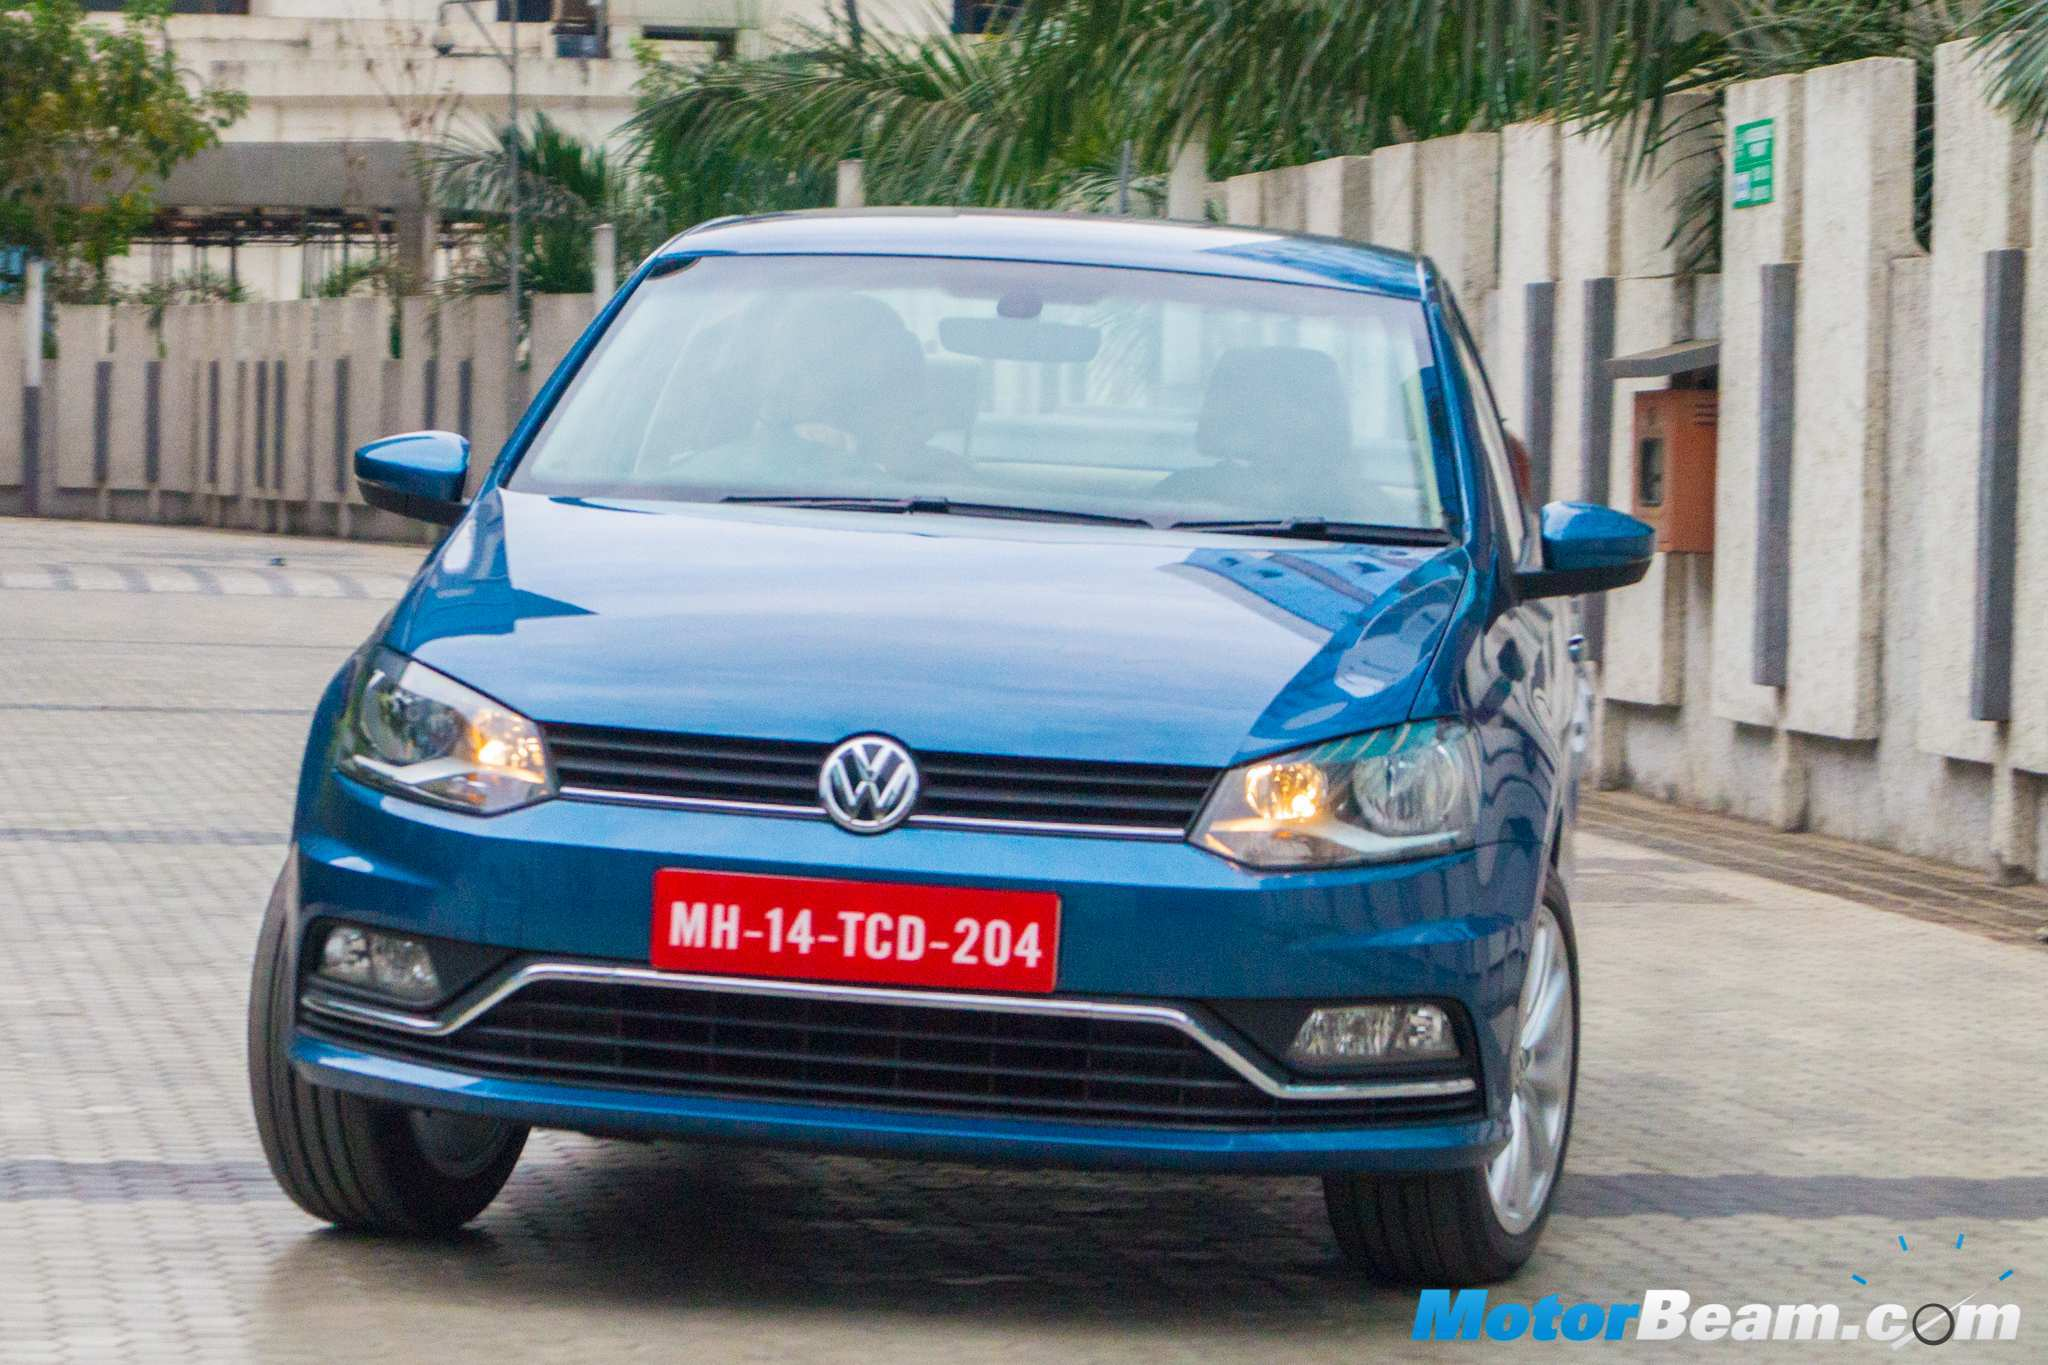 54 All New Volkswagen Ameo 2020 Review And Release Date